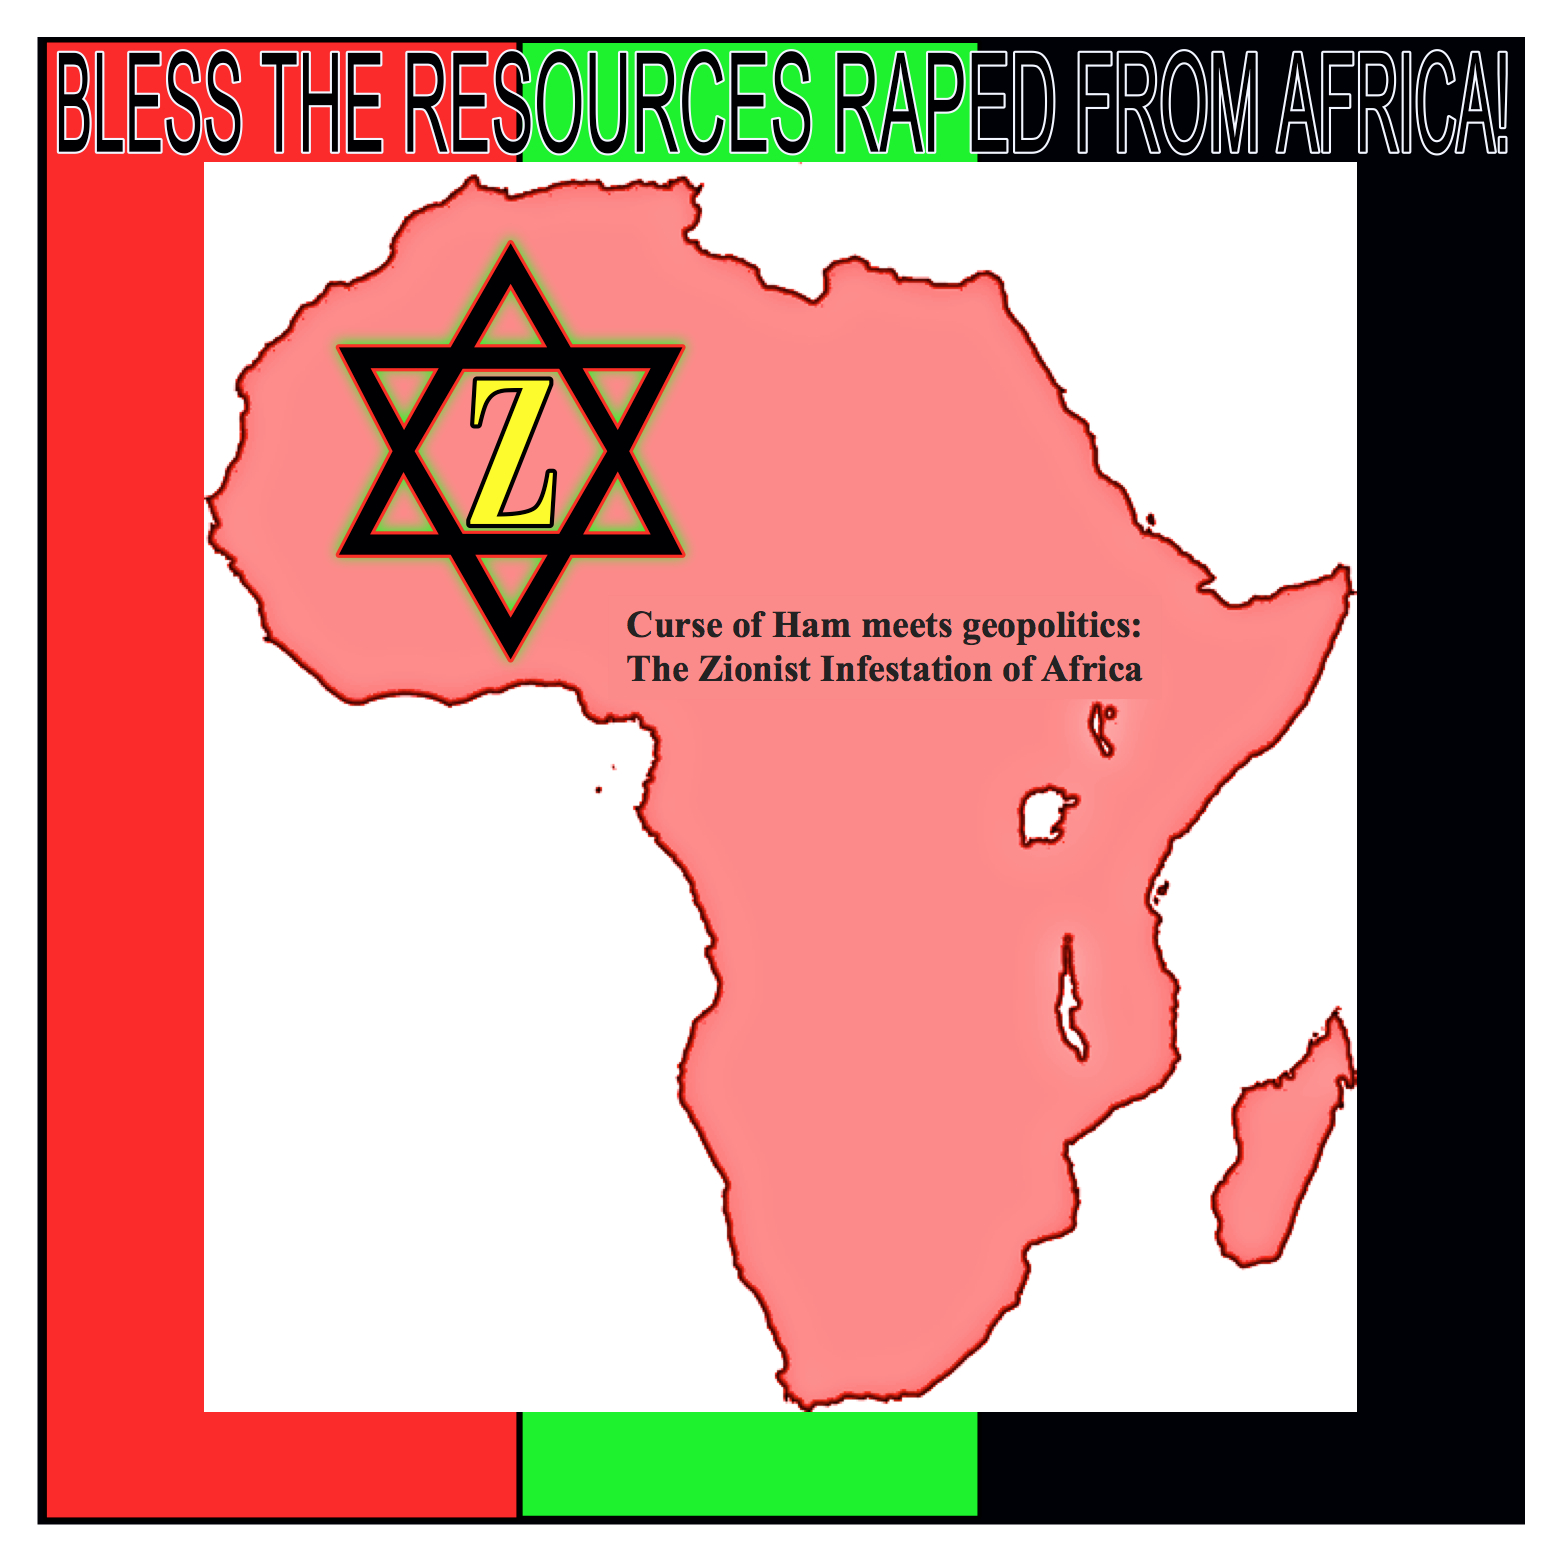 Uprooted Palestinian: The Zionist Infestation Of Africa